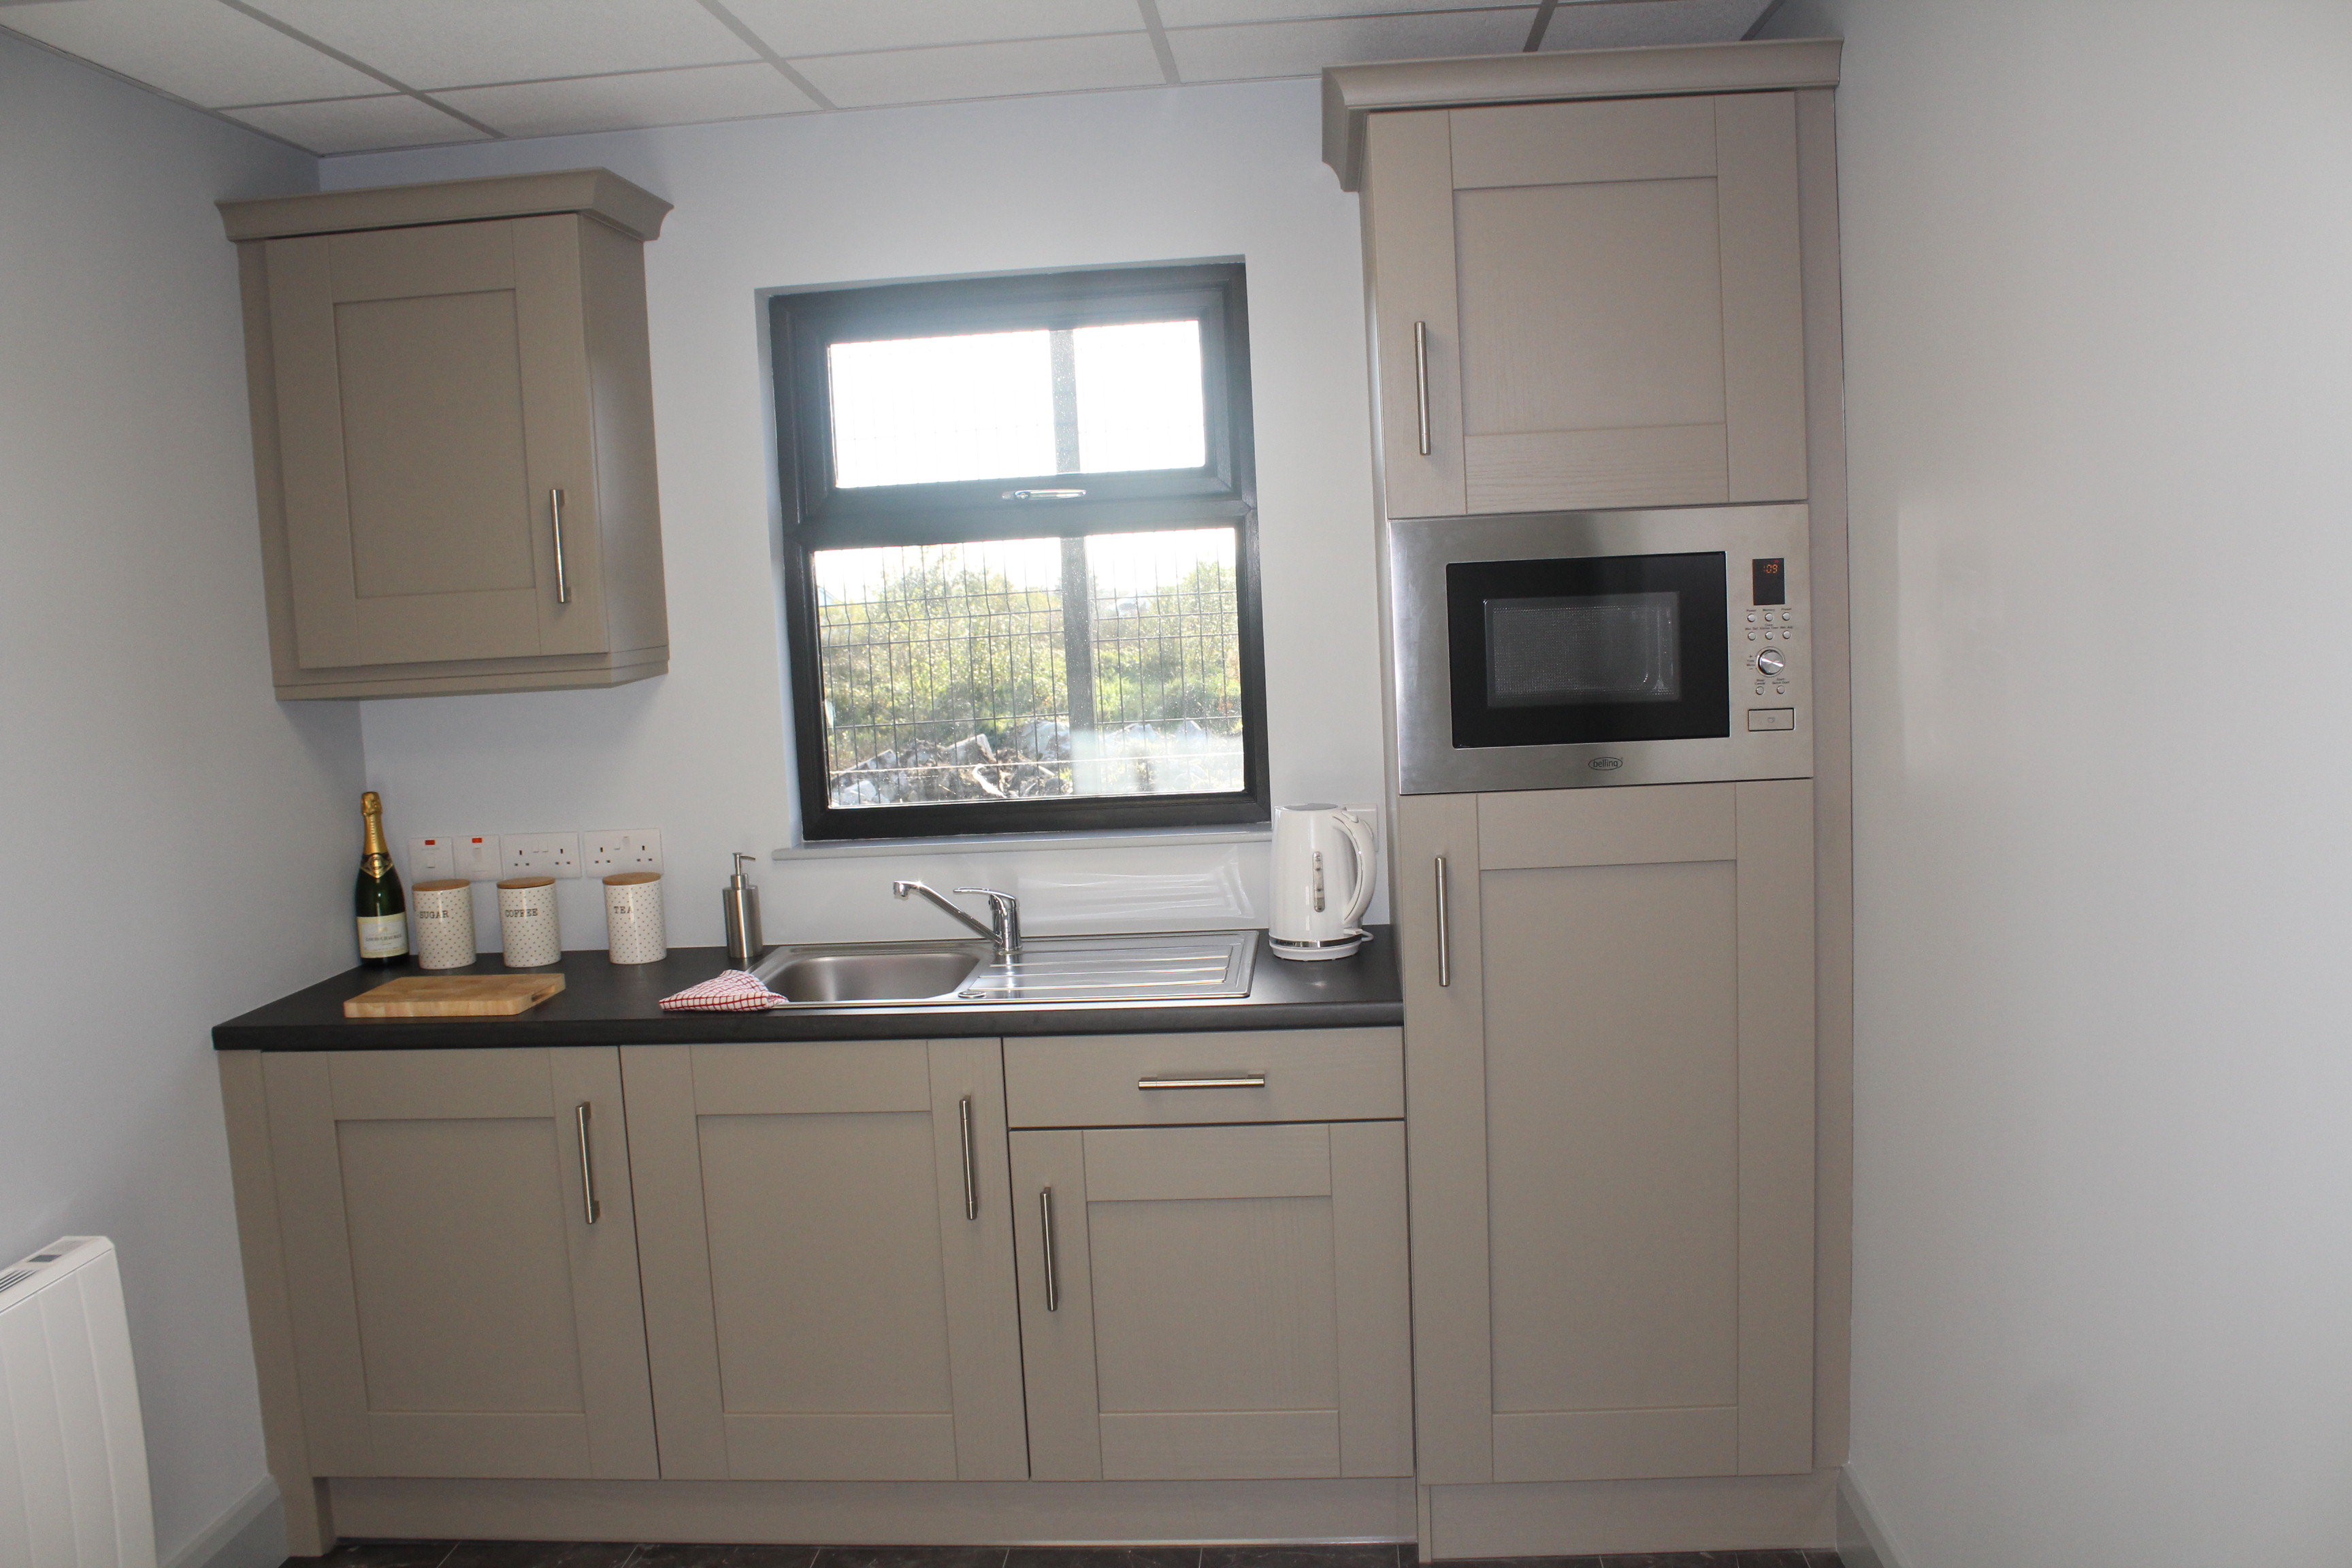 KES Group Modular Construction modular office kitchen